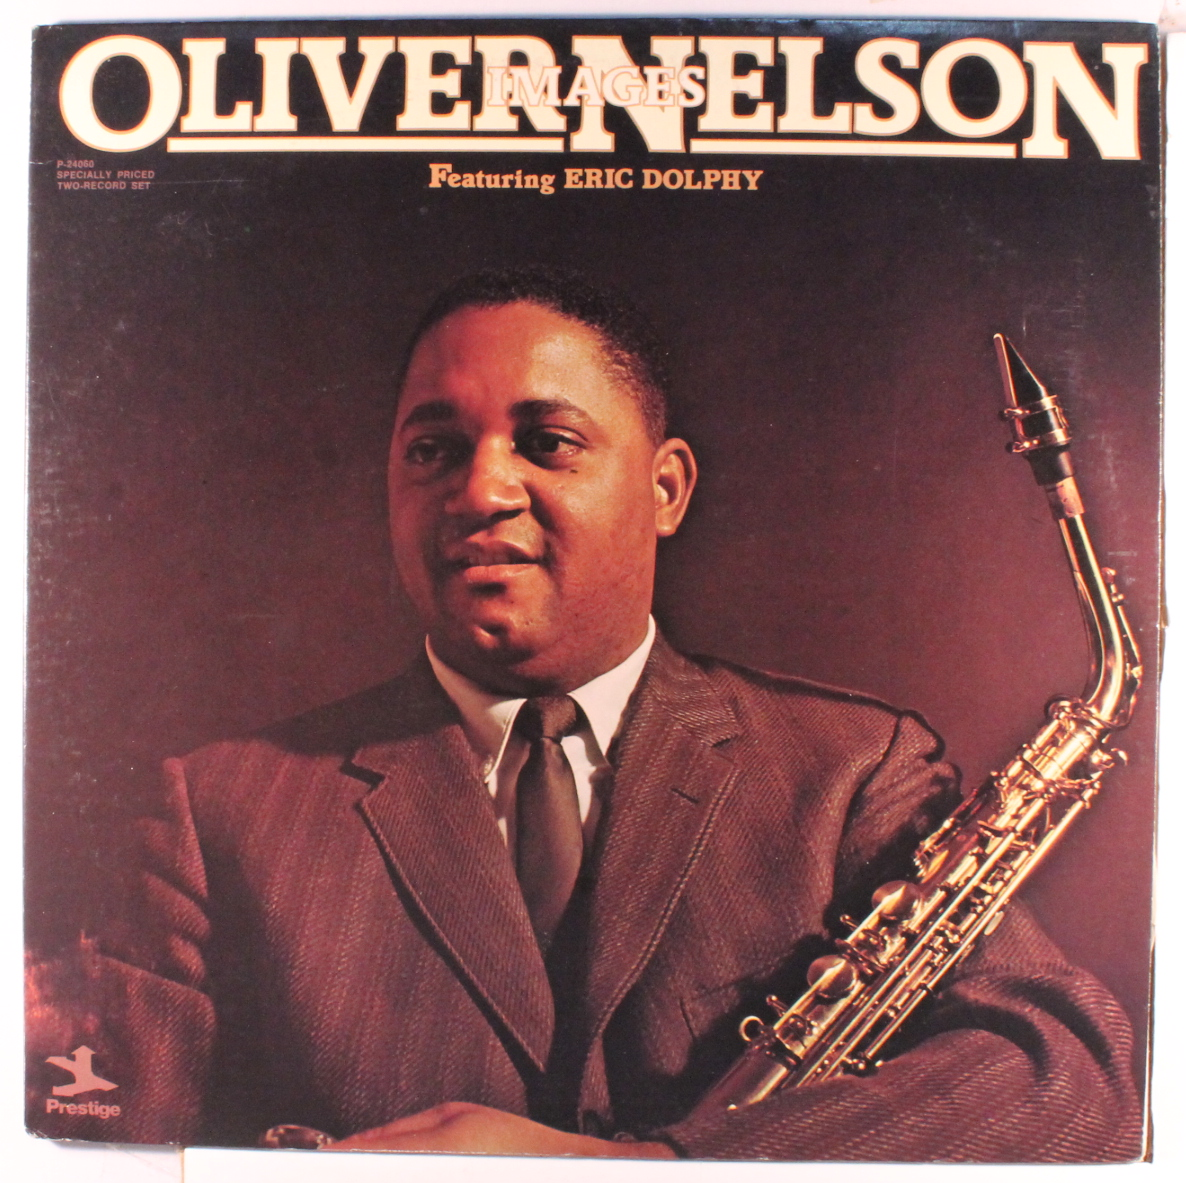 Oliver Nelson featuing Images Eric Dolphy